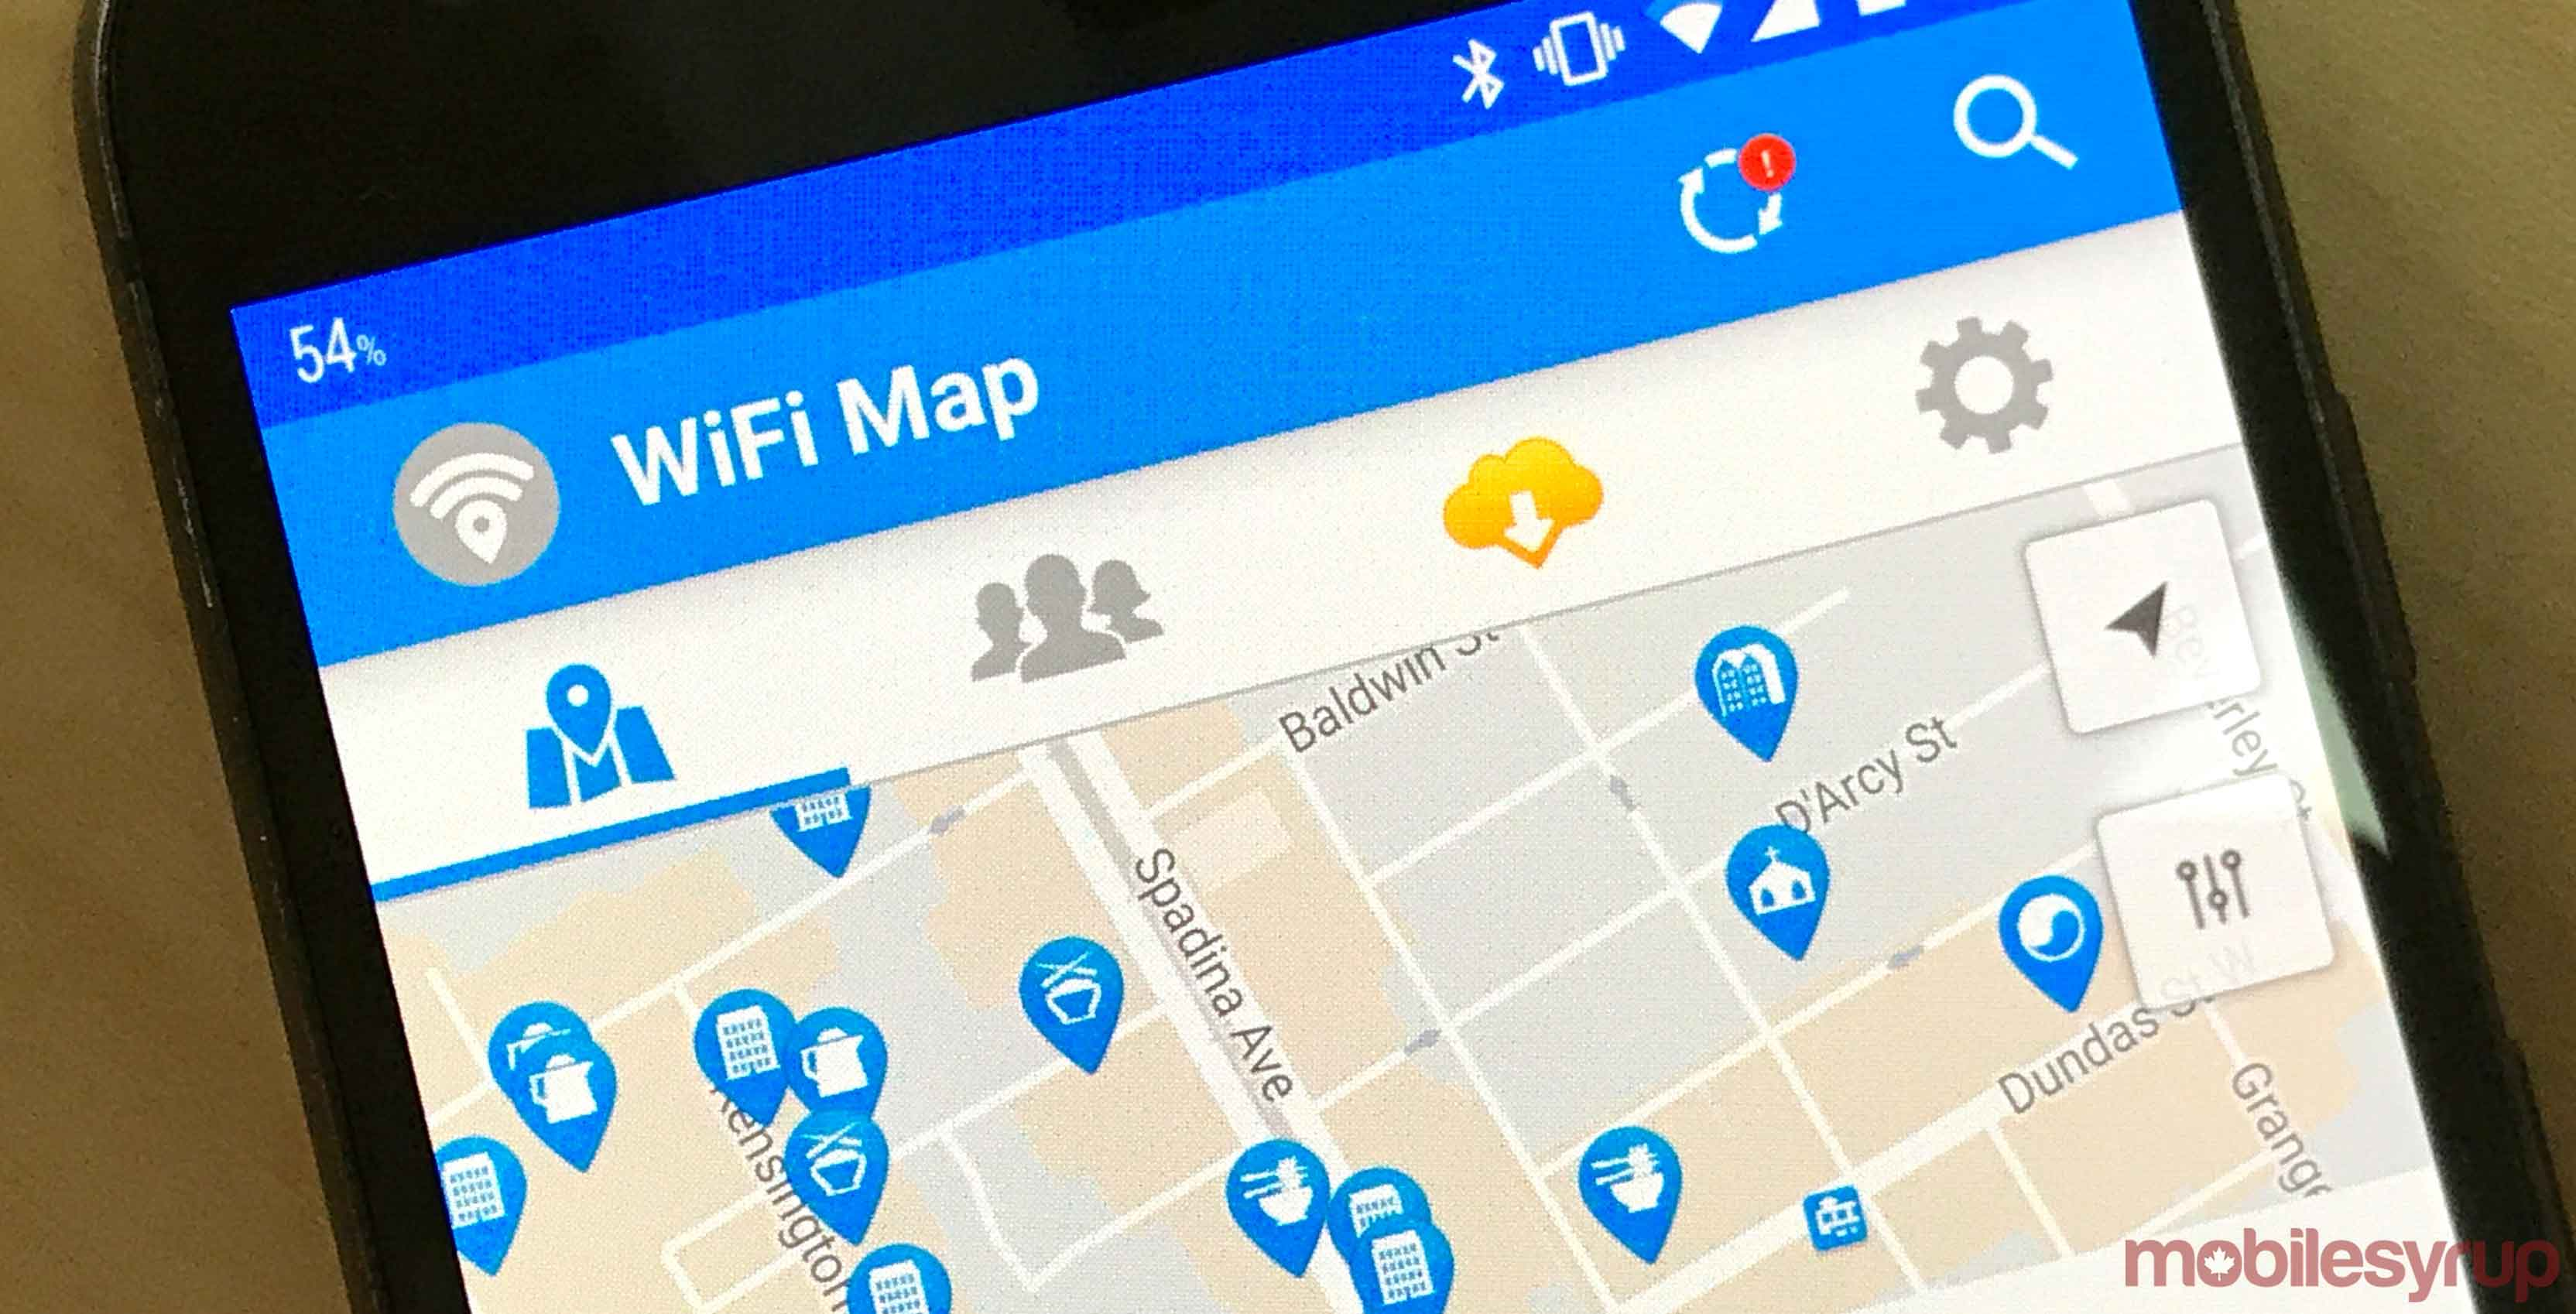 Never be without WiFi again with WiFi Map [App of the week]